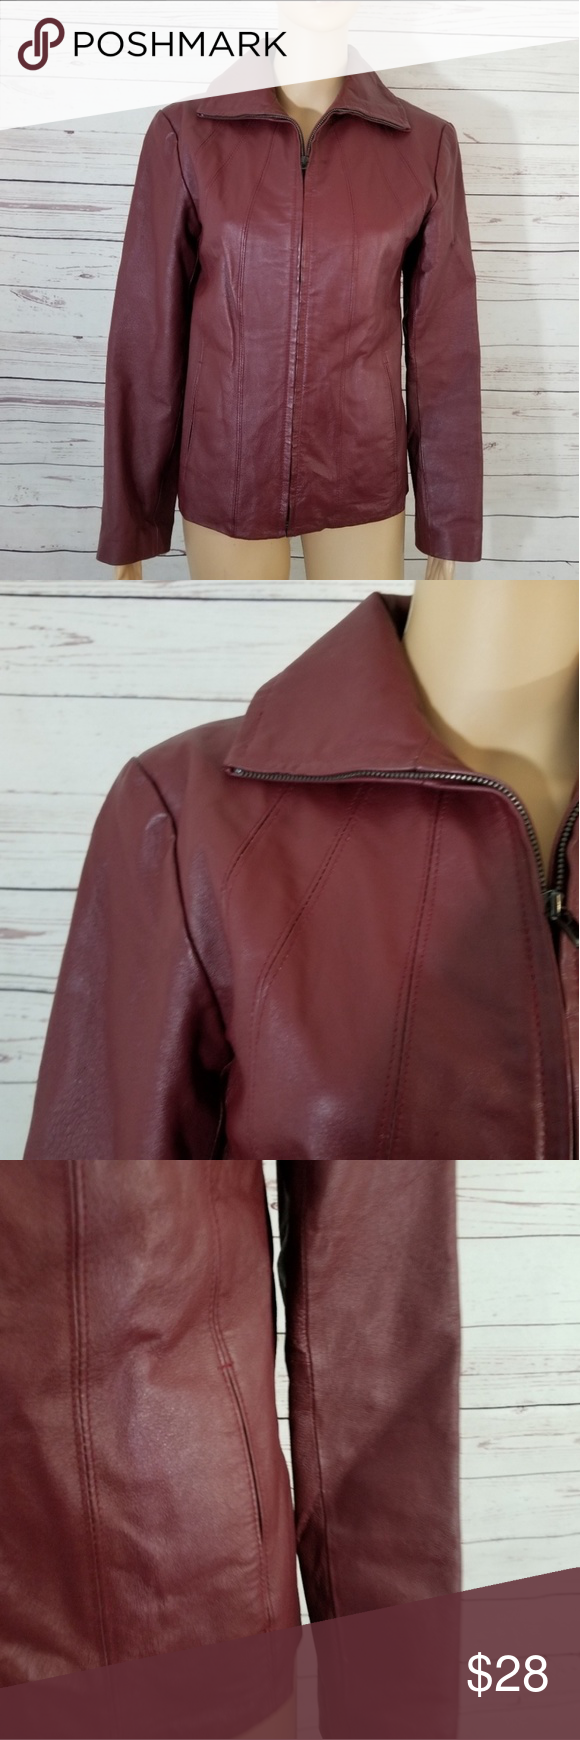 East 5th leather Jacket Size Small Burgundy (With images